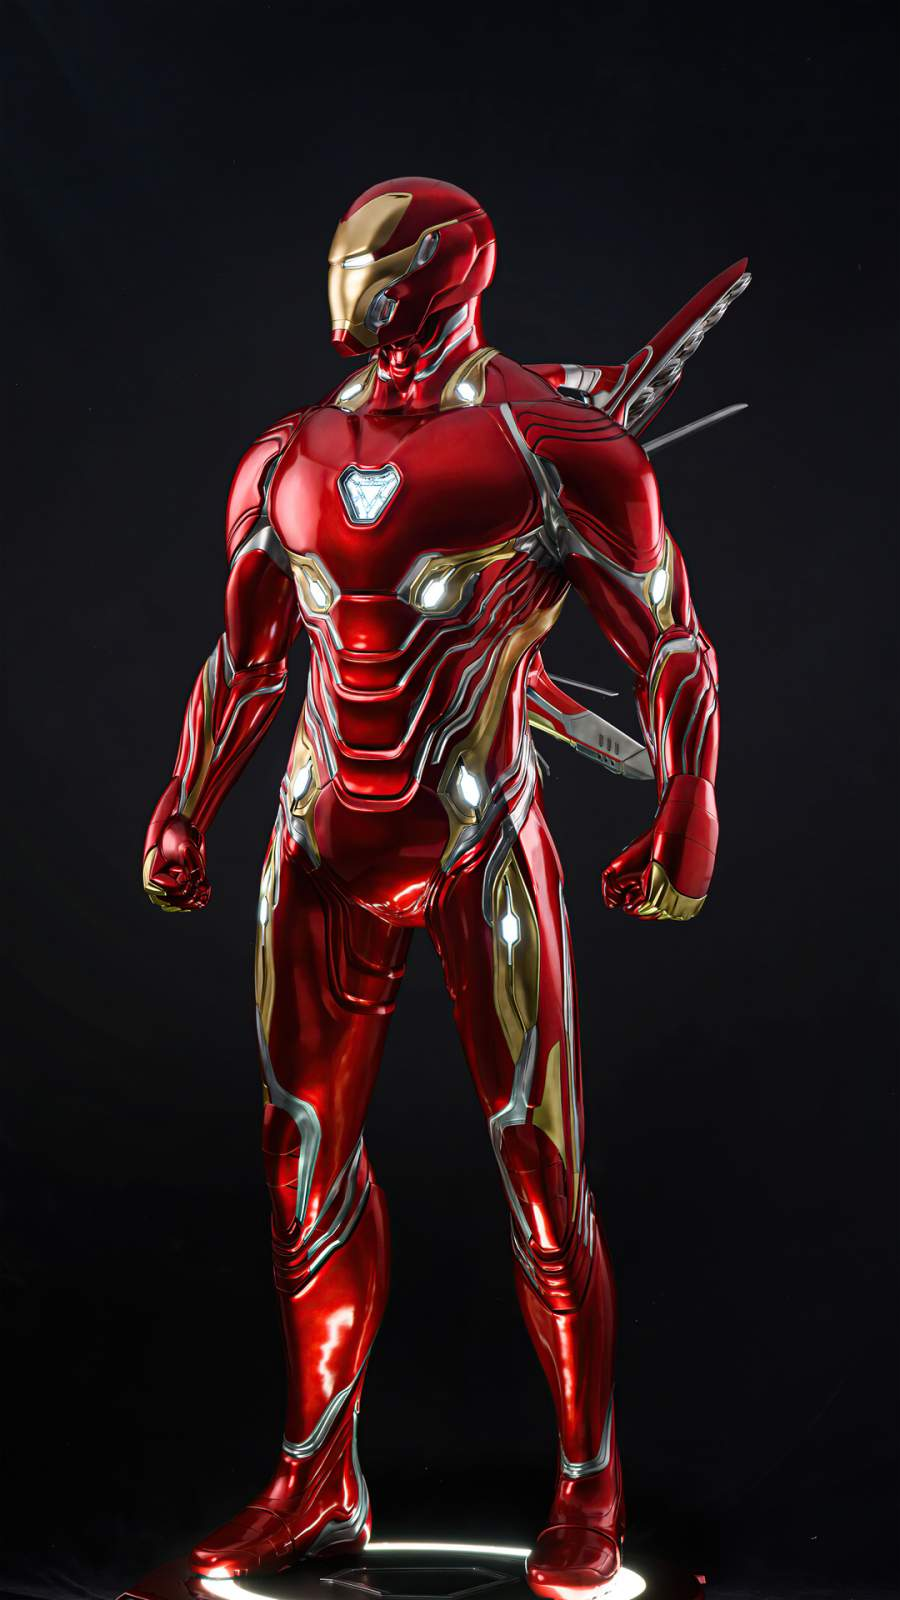 Iron Man Mechanical Suit